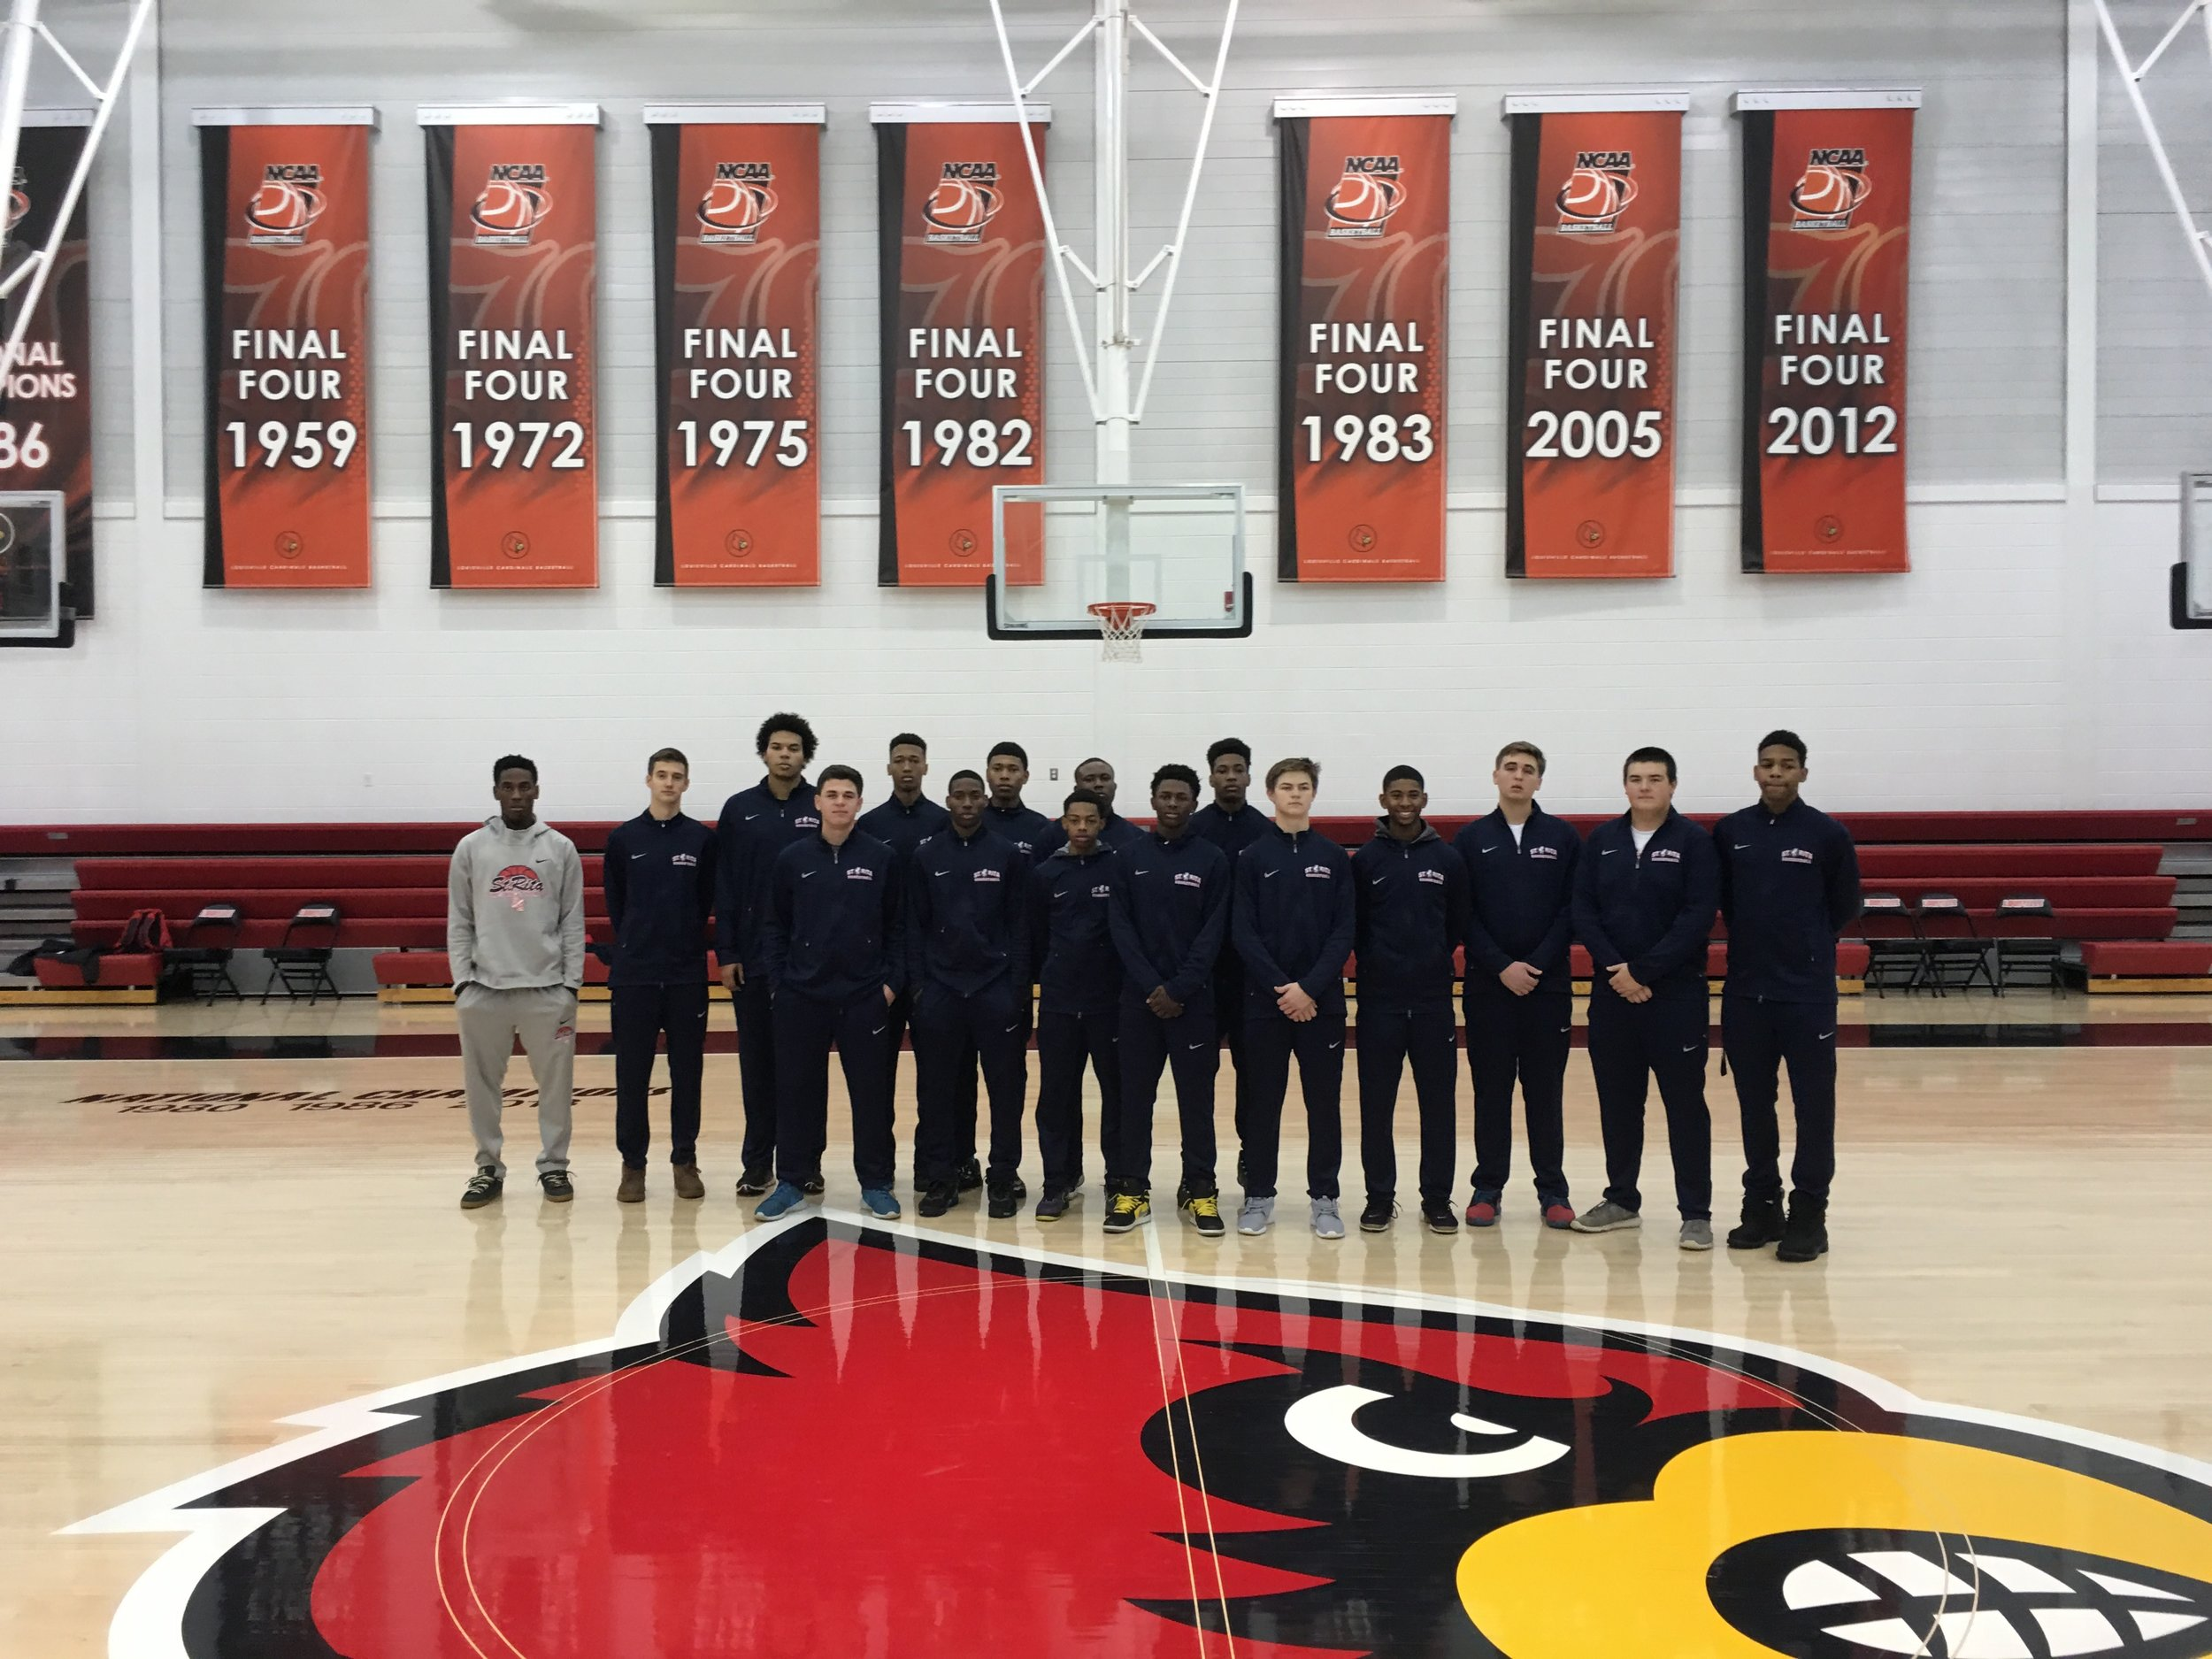 St. Rita Basketball at University of Louisville's practice facility